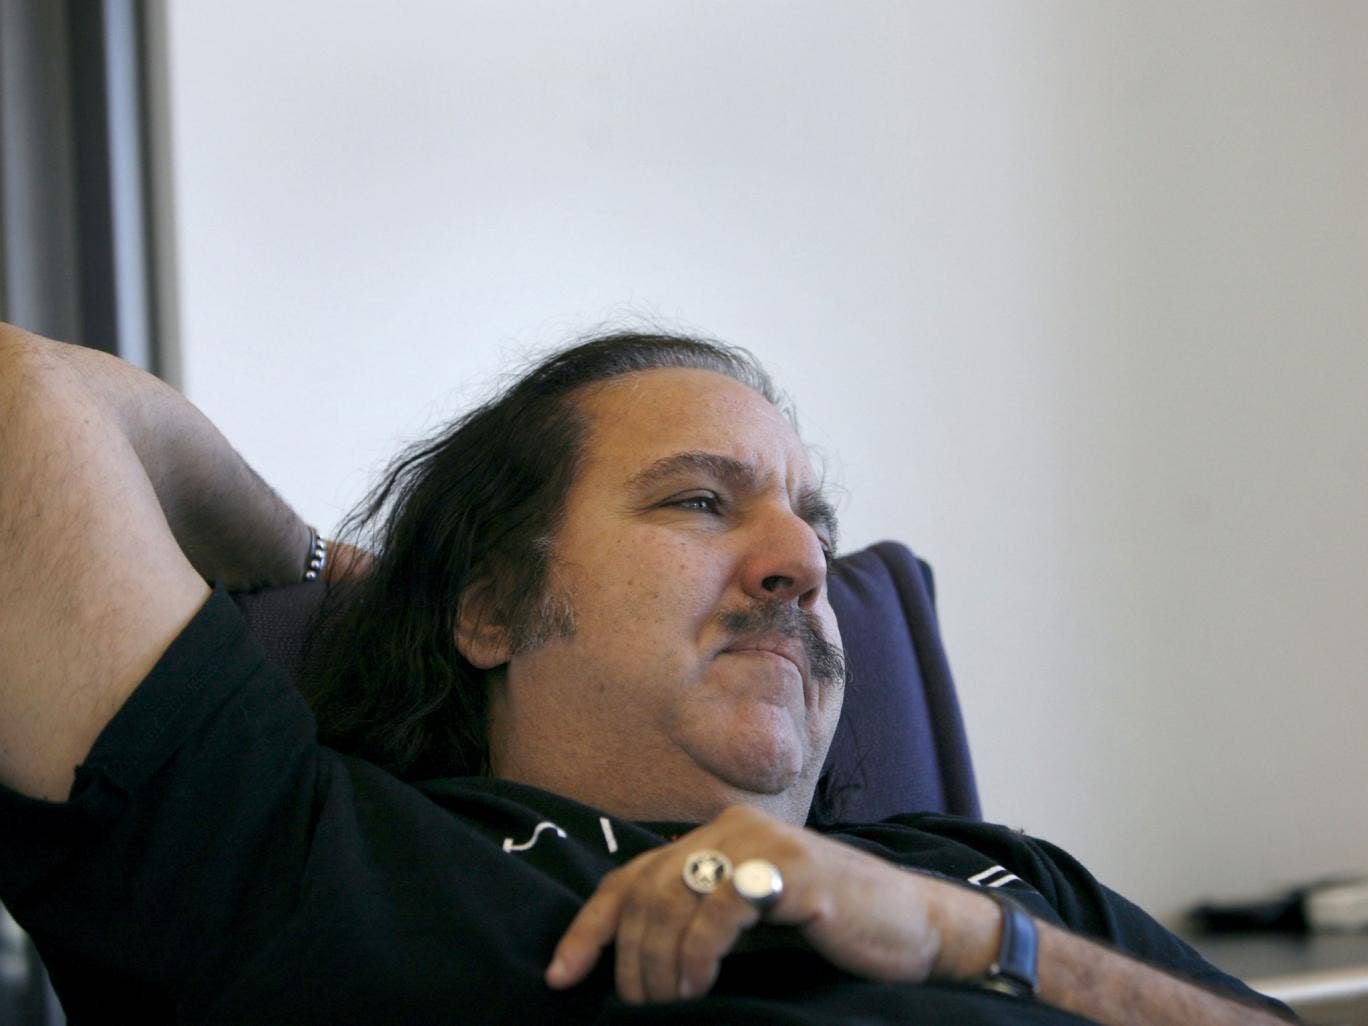 Porn star Ron Jeremy is recovering from surgery at a Los Angeles hospital after an aneurysm near his heart